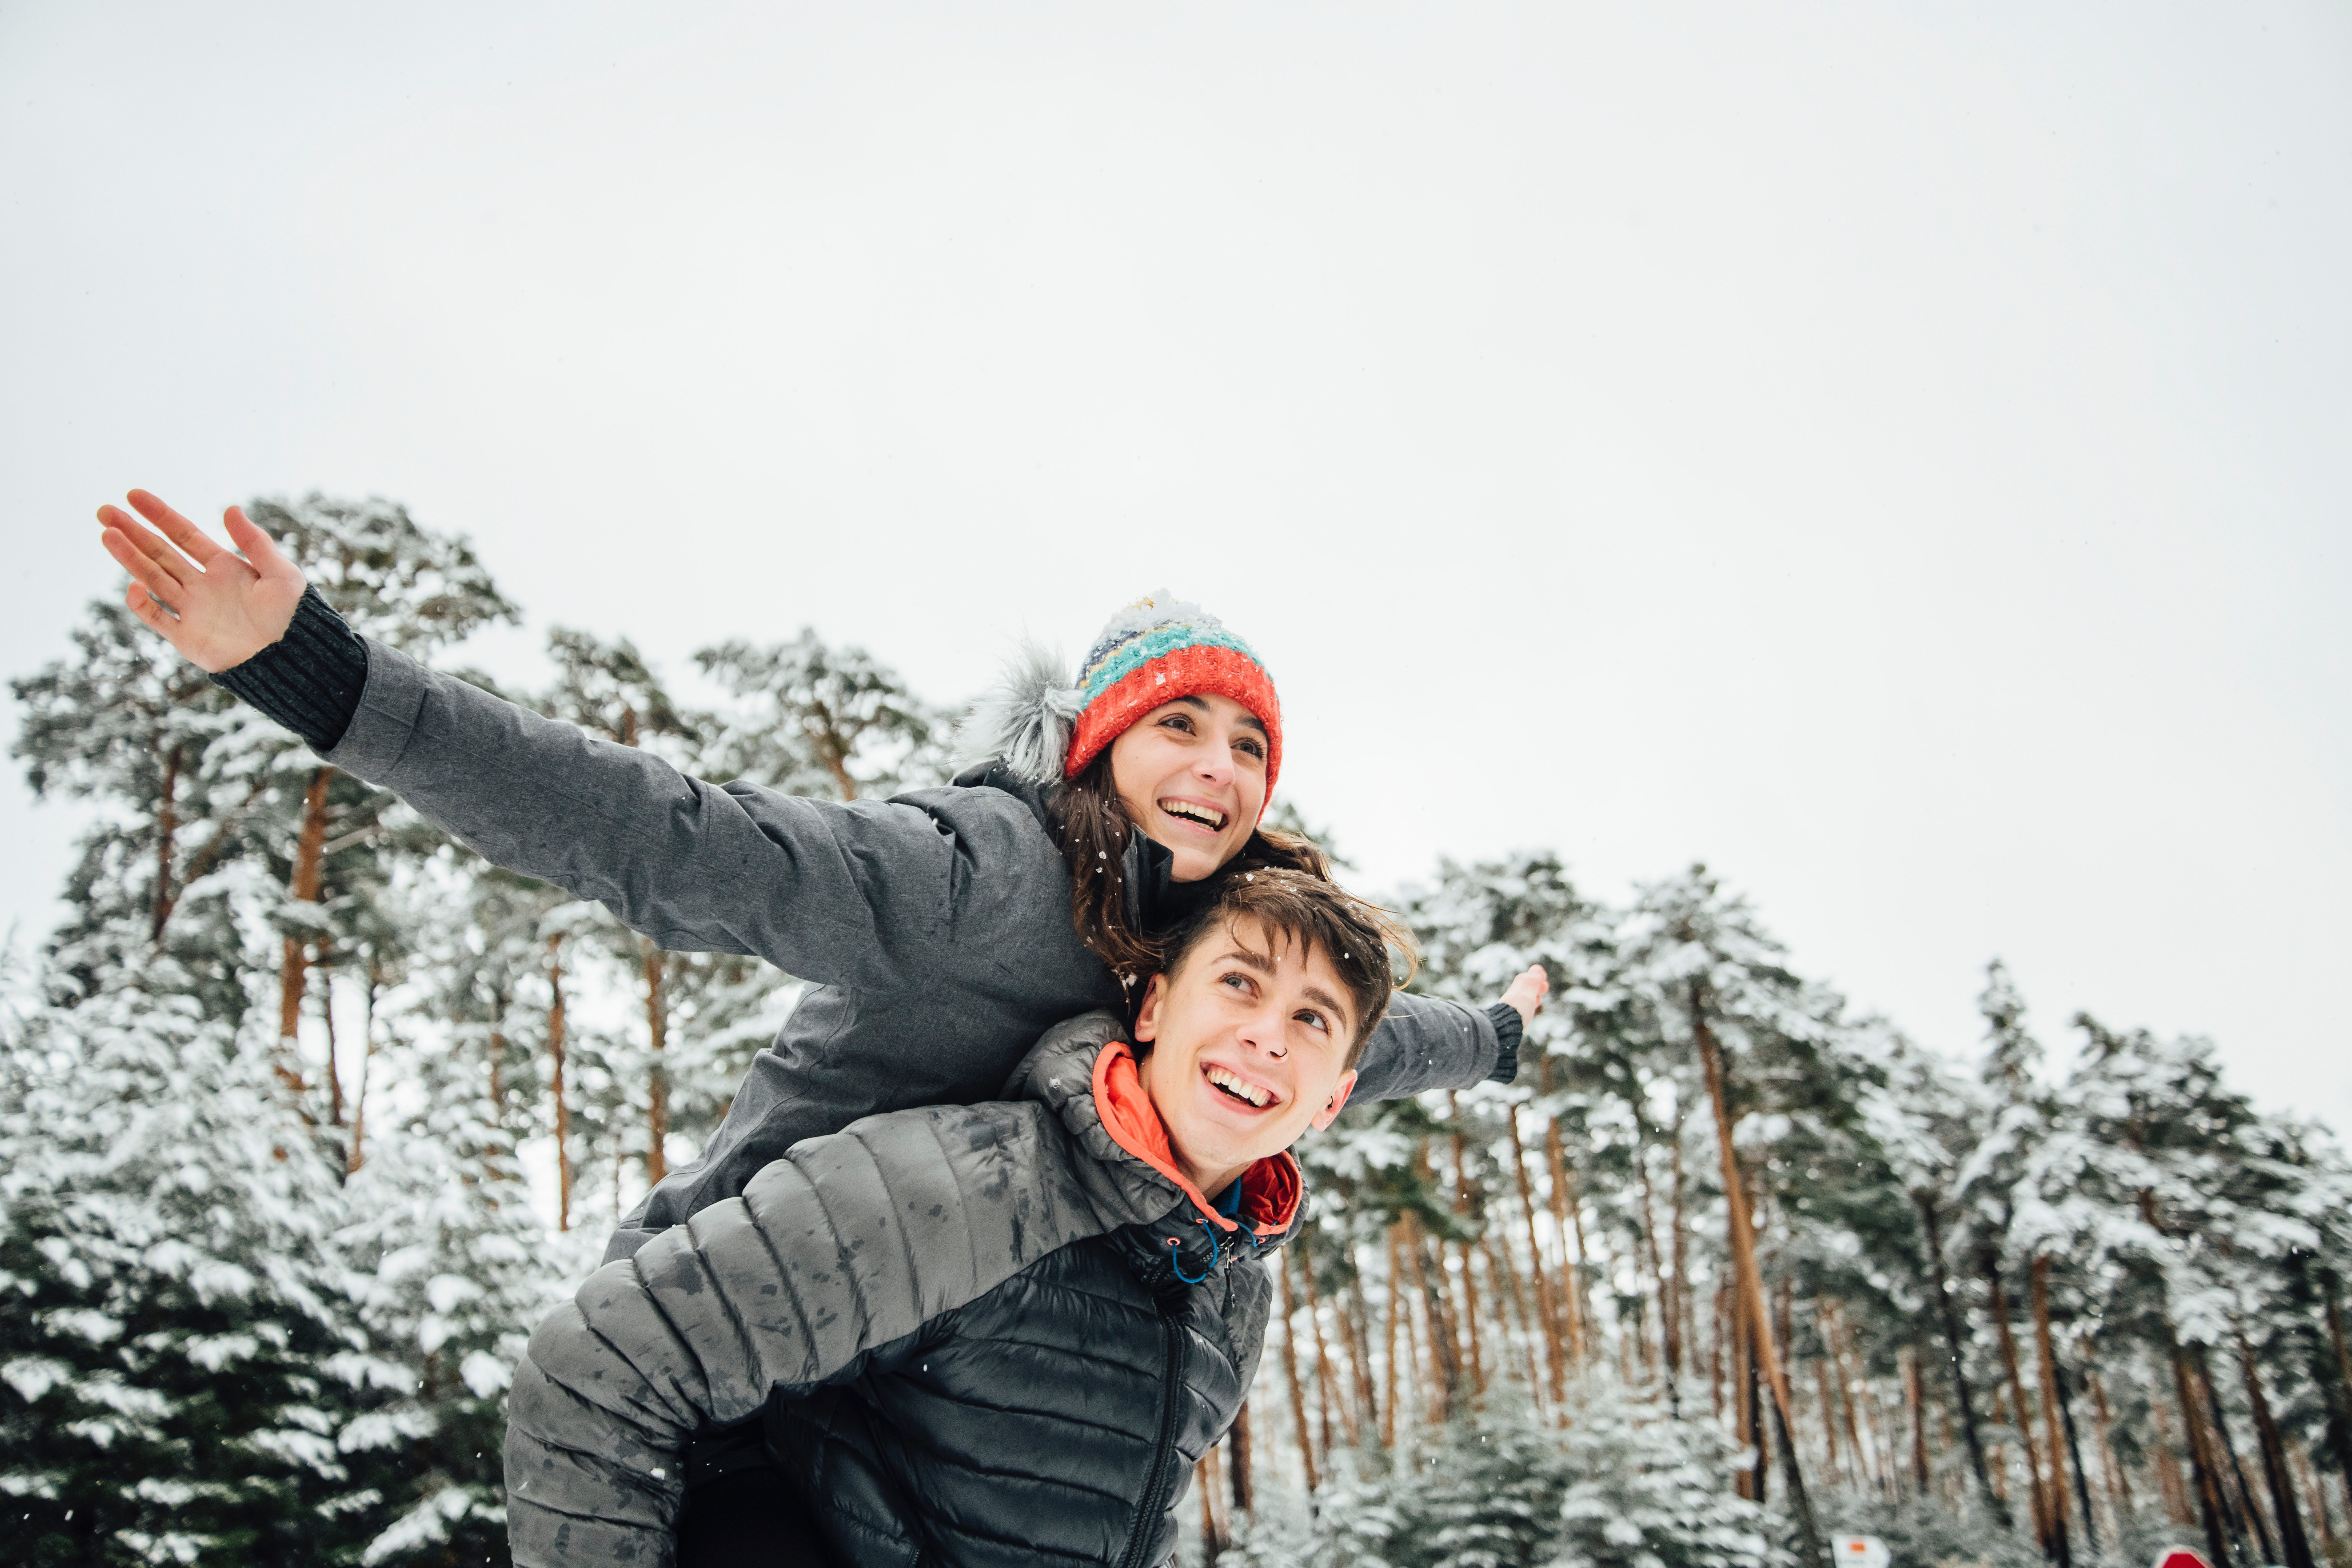 25 Instagram Captions For Snow Days With Your Partner Christmas on a wintry december night brings families closer as they cozy up around a warm hearth. https www elitedaily com p 25 instagram captions for snow days with your partner 19631610